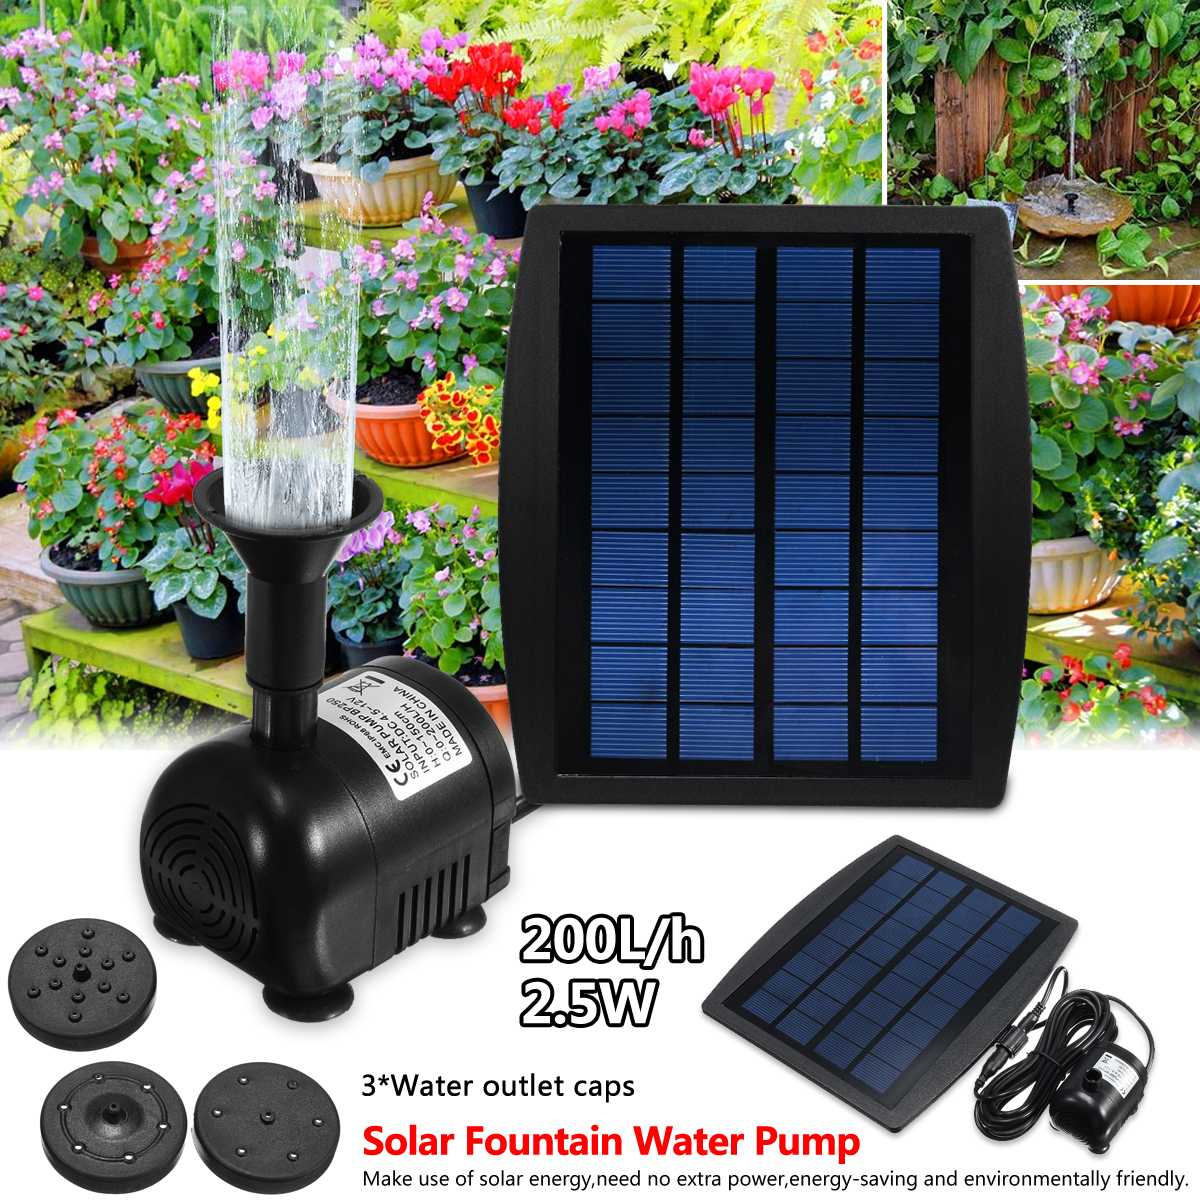 Aliexpress 2 5w Solar Panel Floating Fountain Pump Kit Waterfall Outdoor Water Bird Bath From Reliable Suppliers On